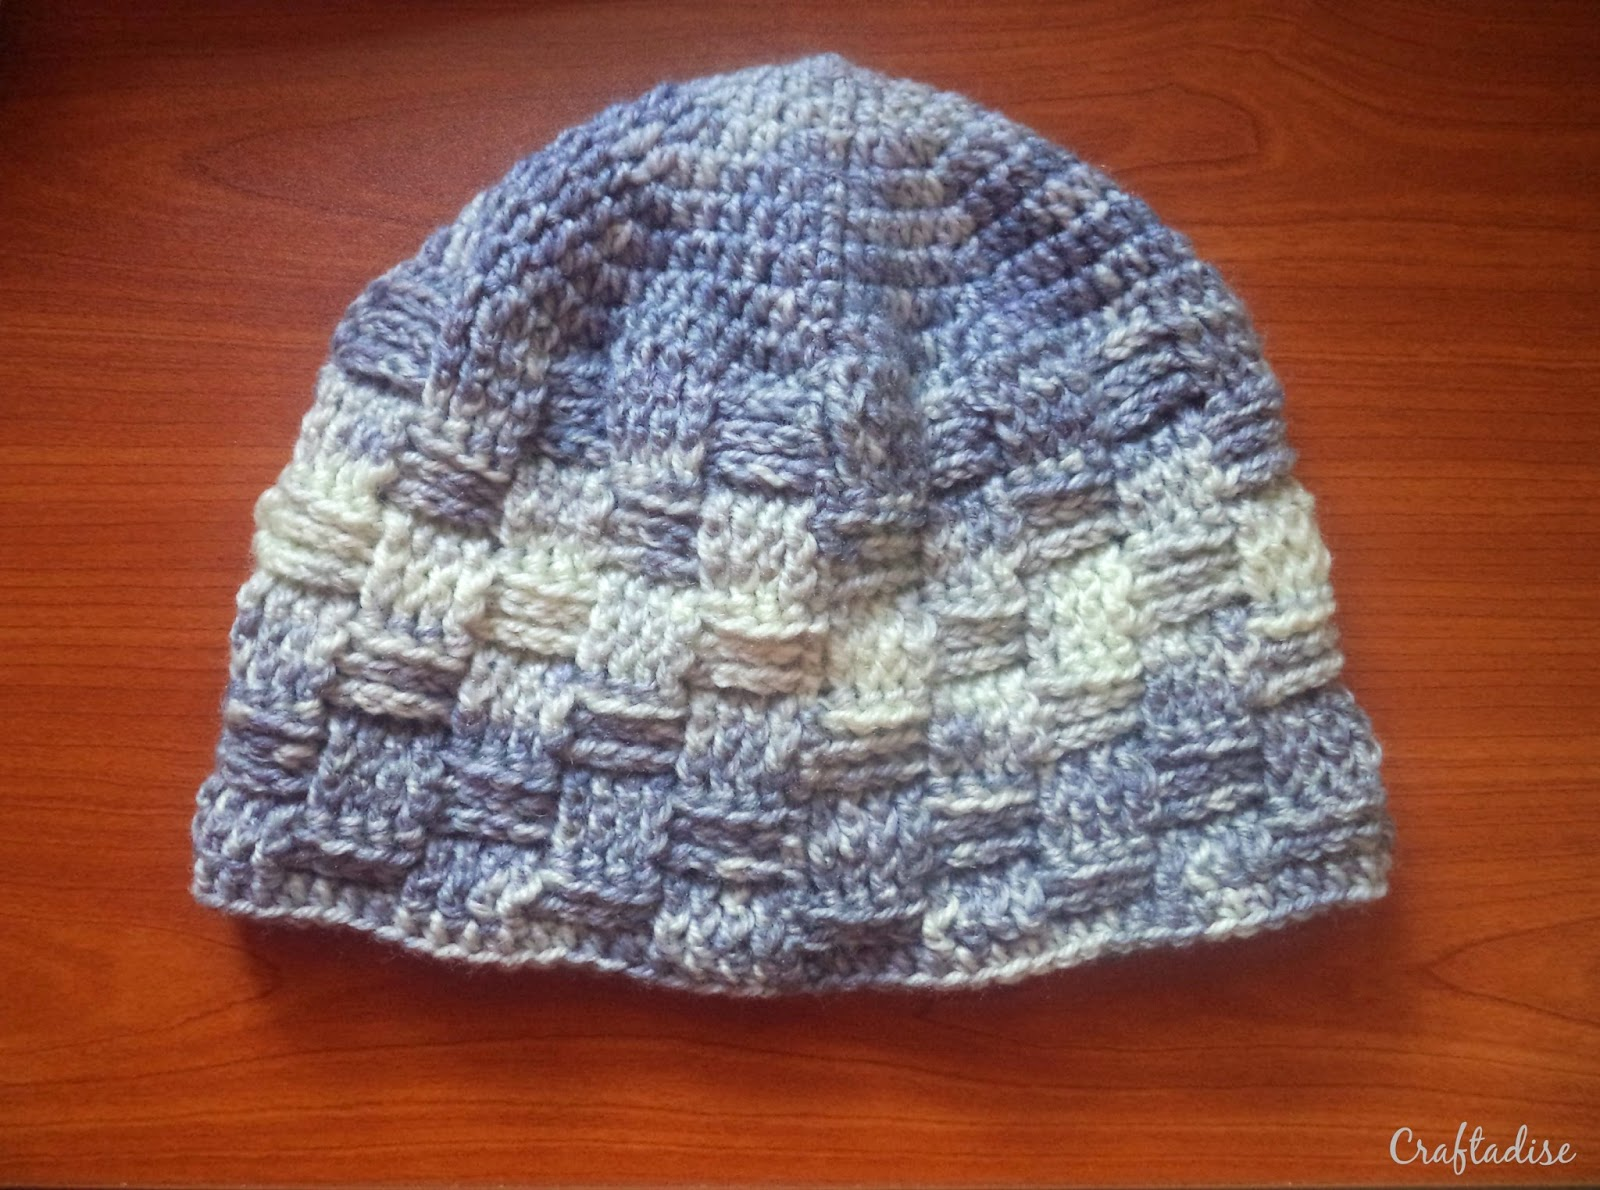 Basket Weave Hat Pattern Free : Made in craftadise top art crafts home decor